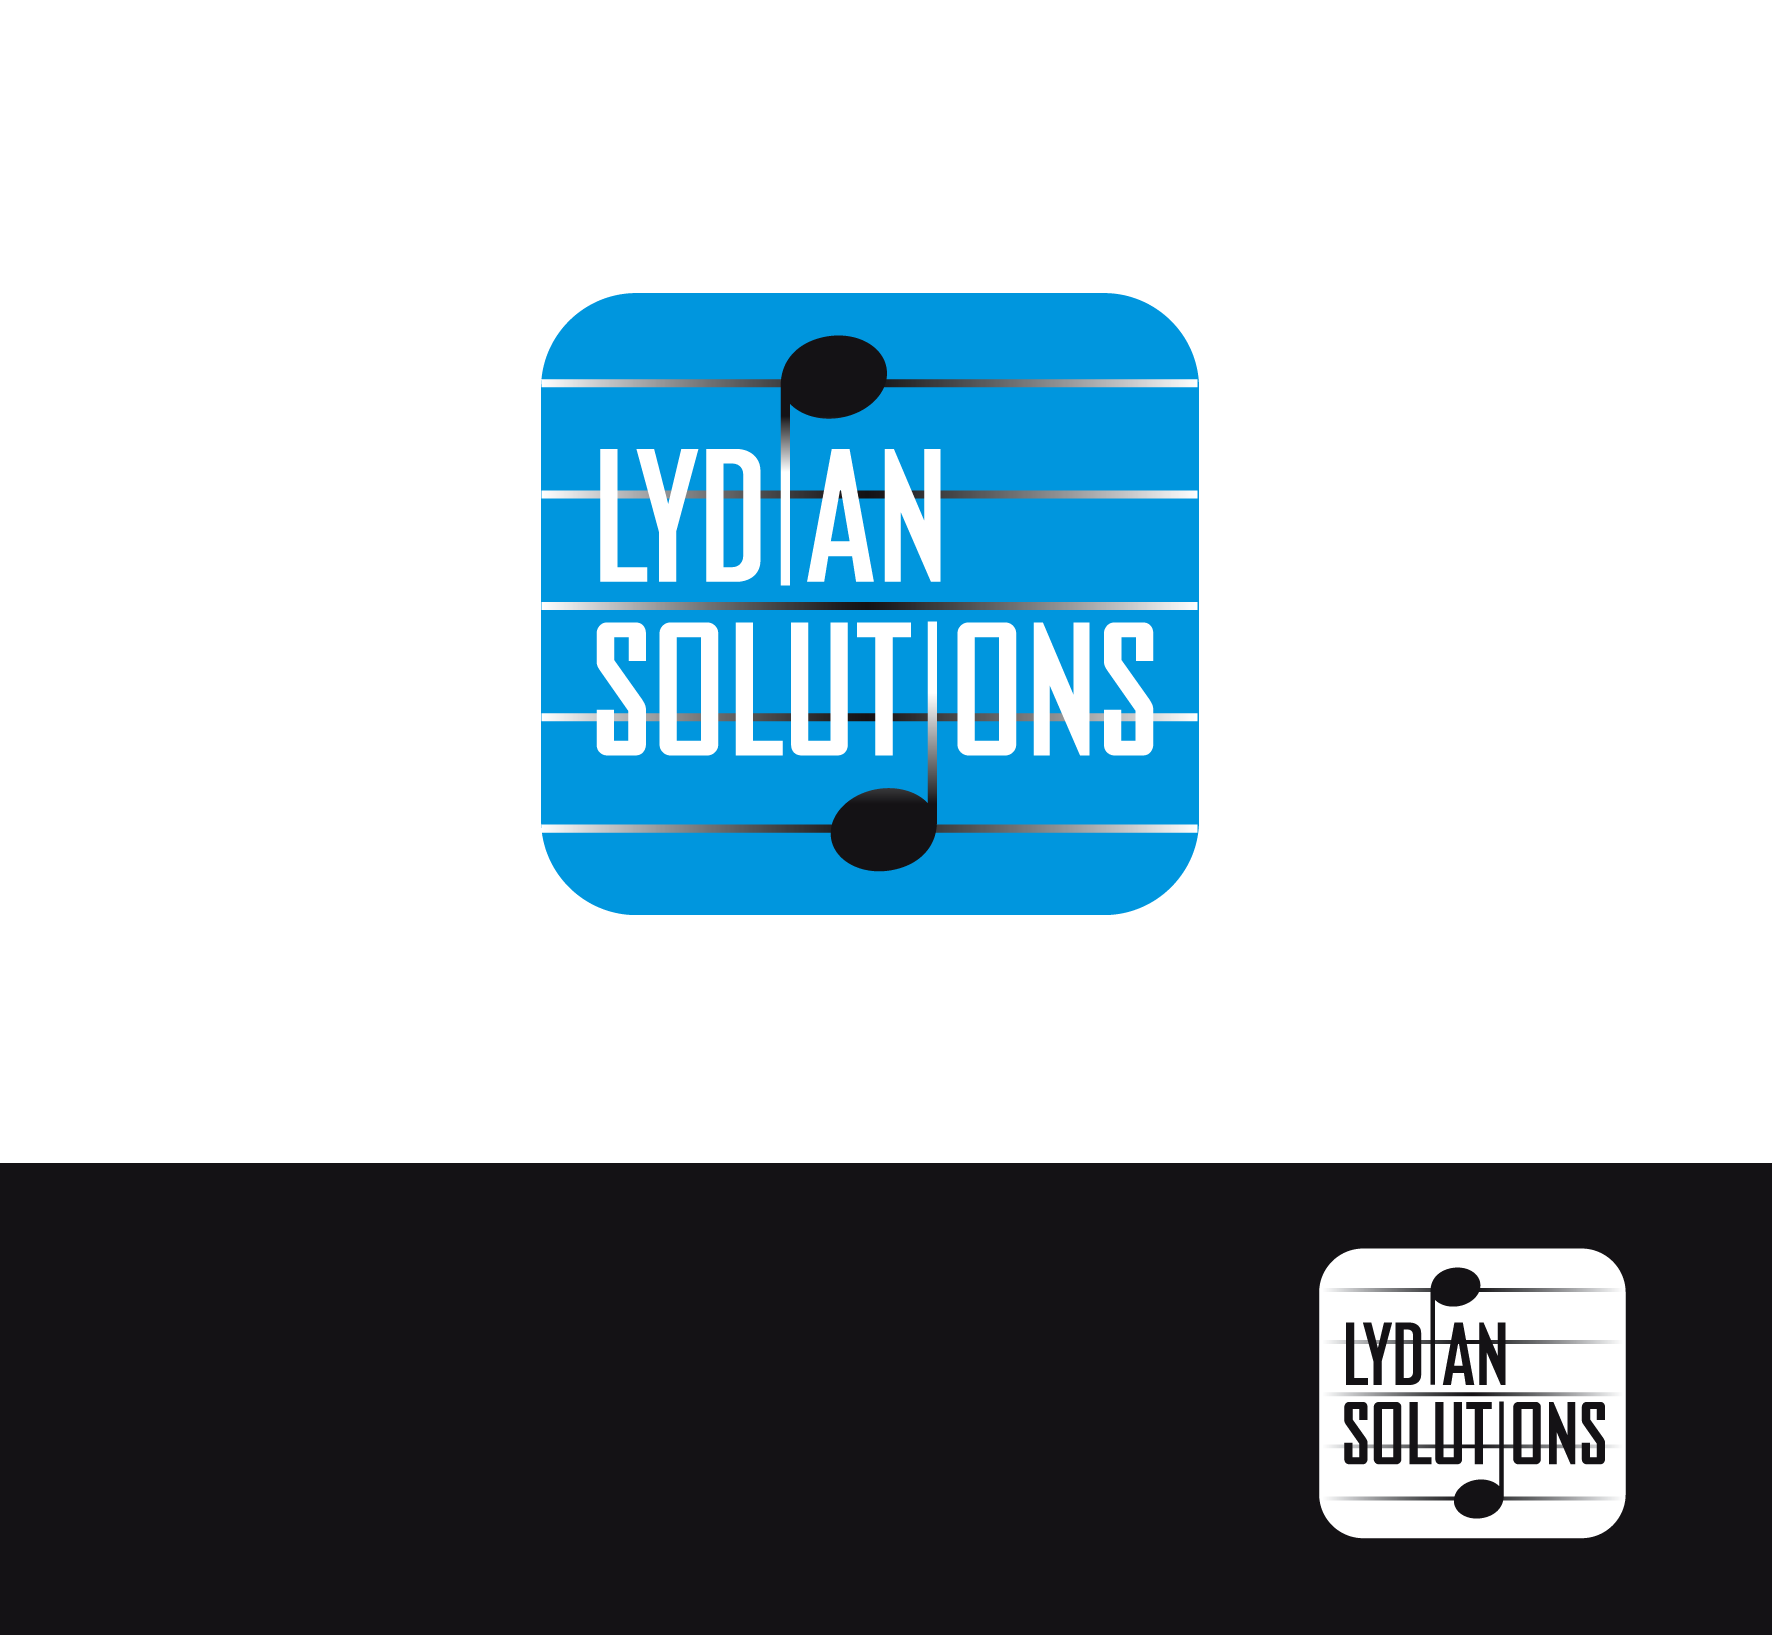 Logo Design by luna - Entry No. 27 in the Logo Design Contest Fun Logo Design for Lydian Solutions.